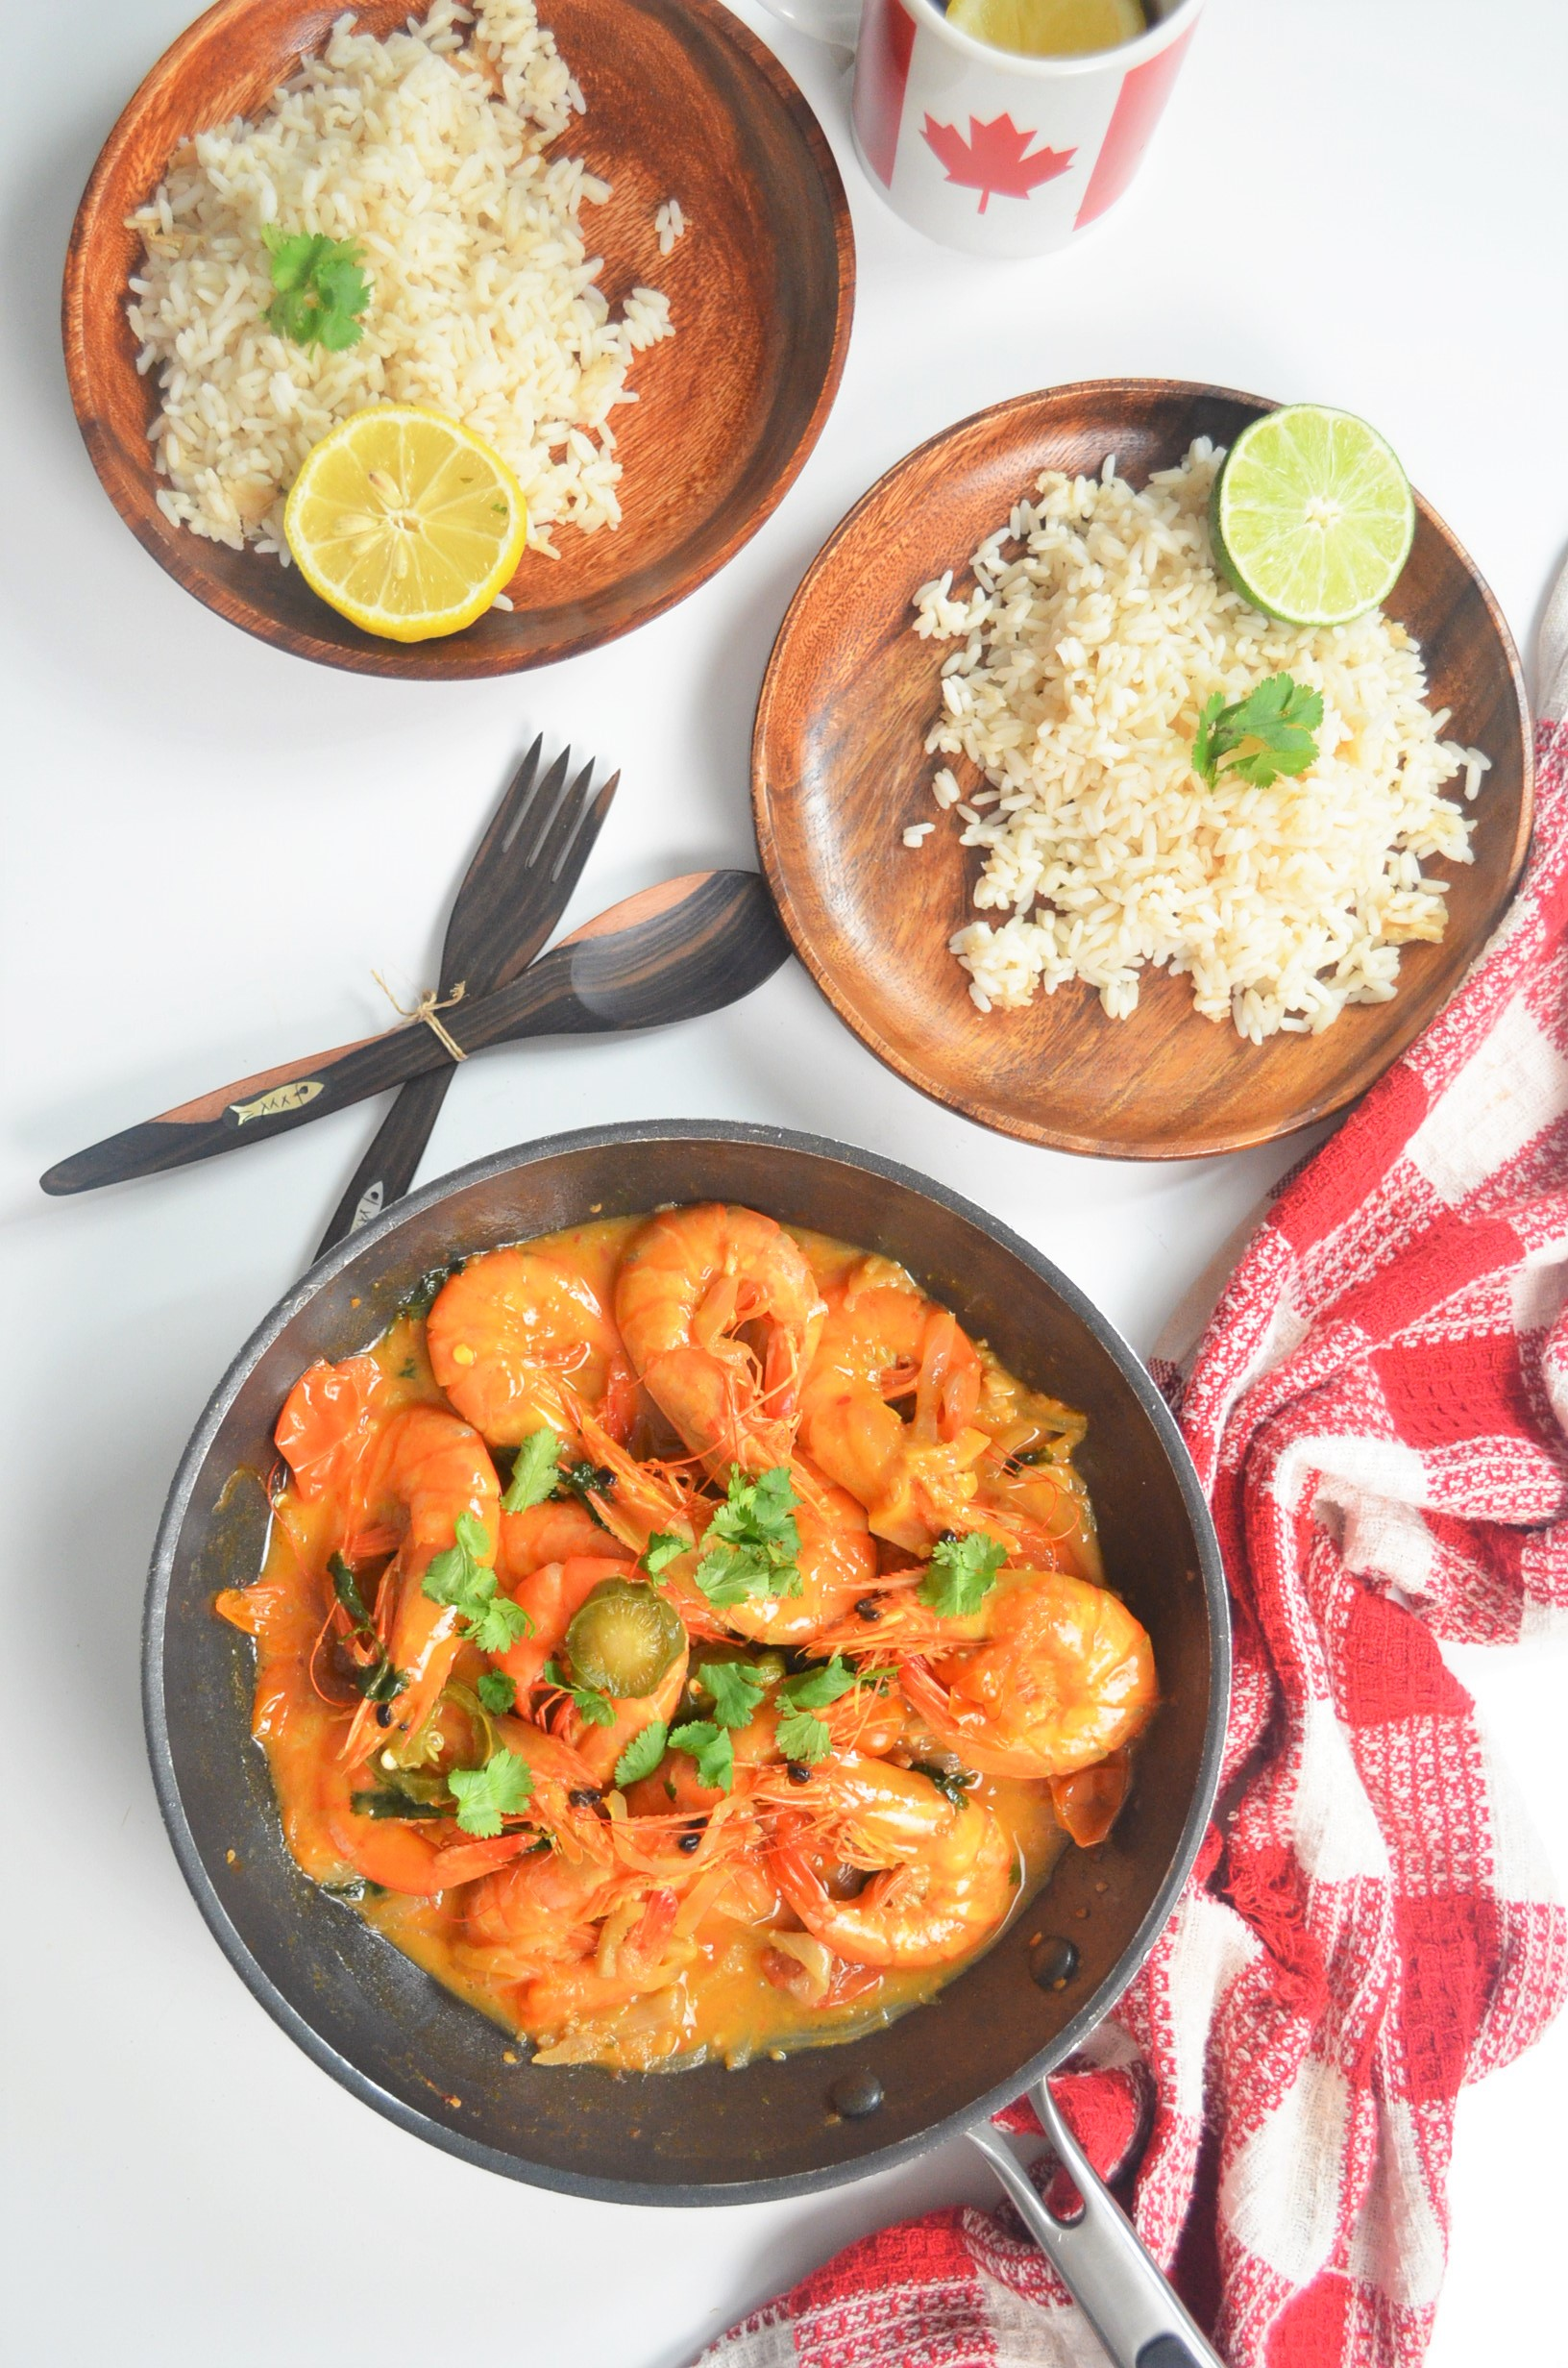 Spicy Shrimp in Coconut Sauce